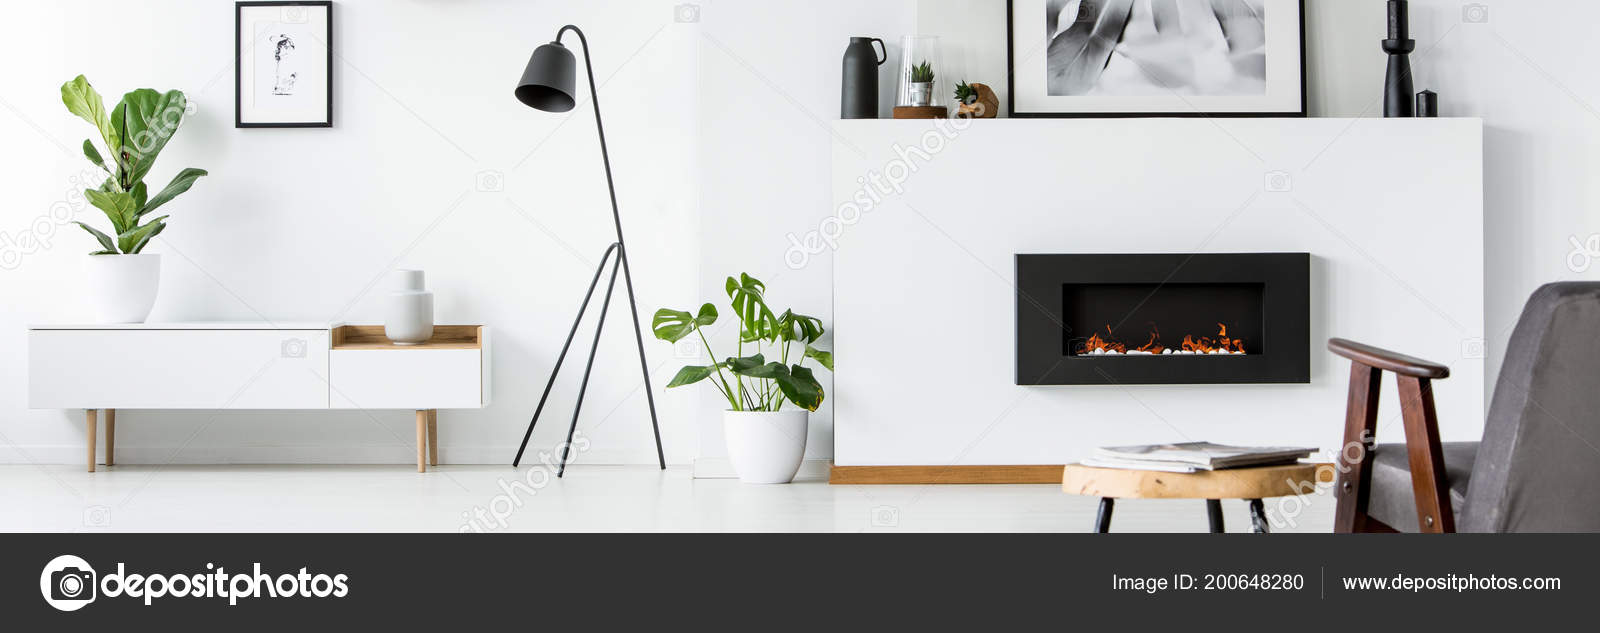 Wall Poster Decorations Fireplace Bright Living Room